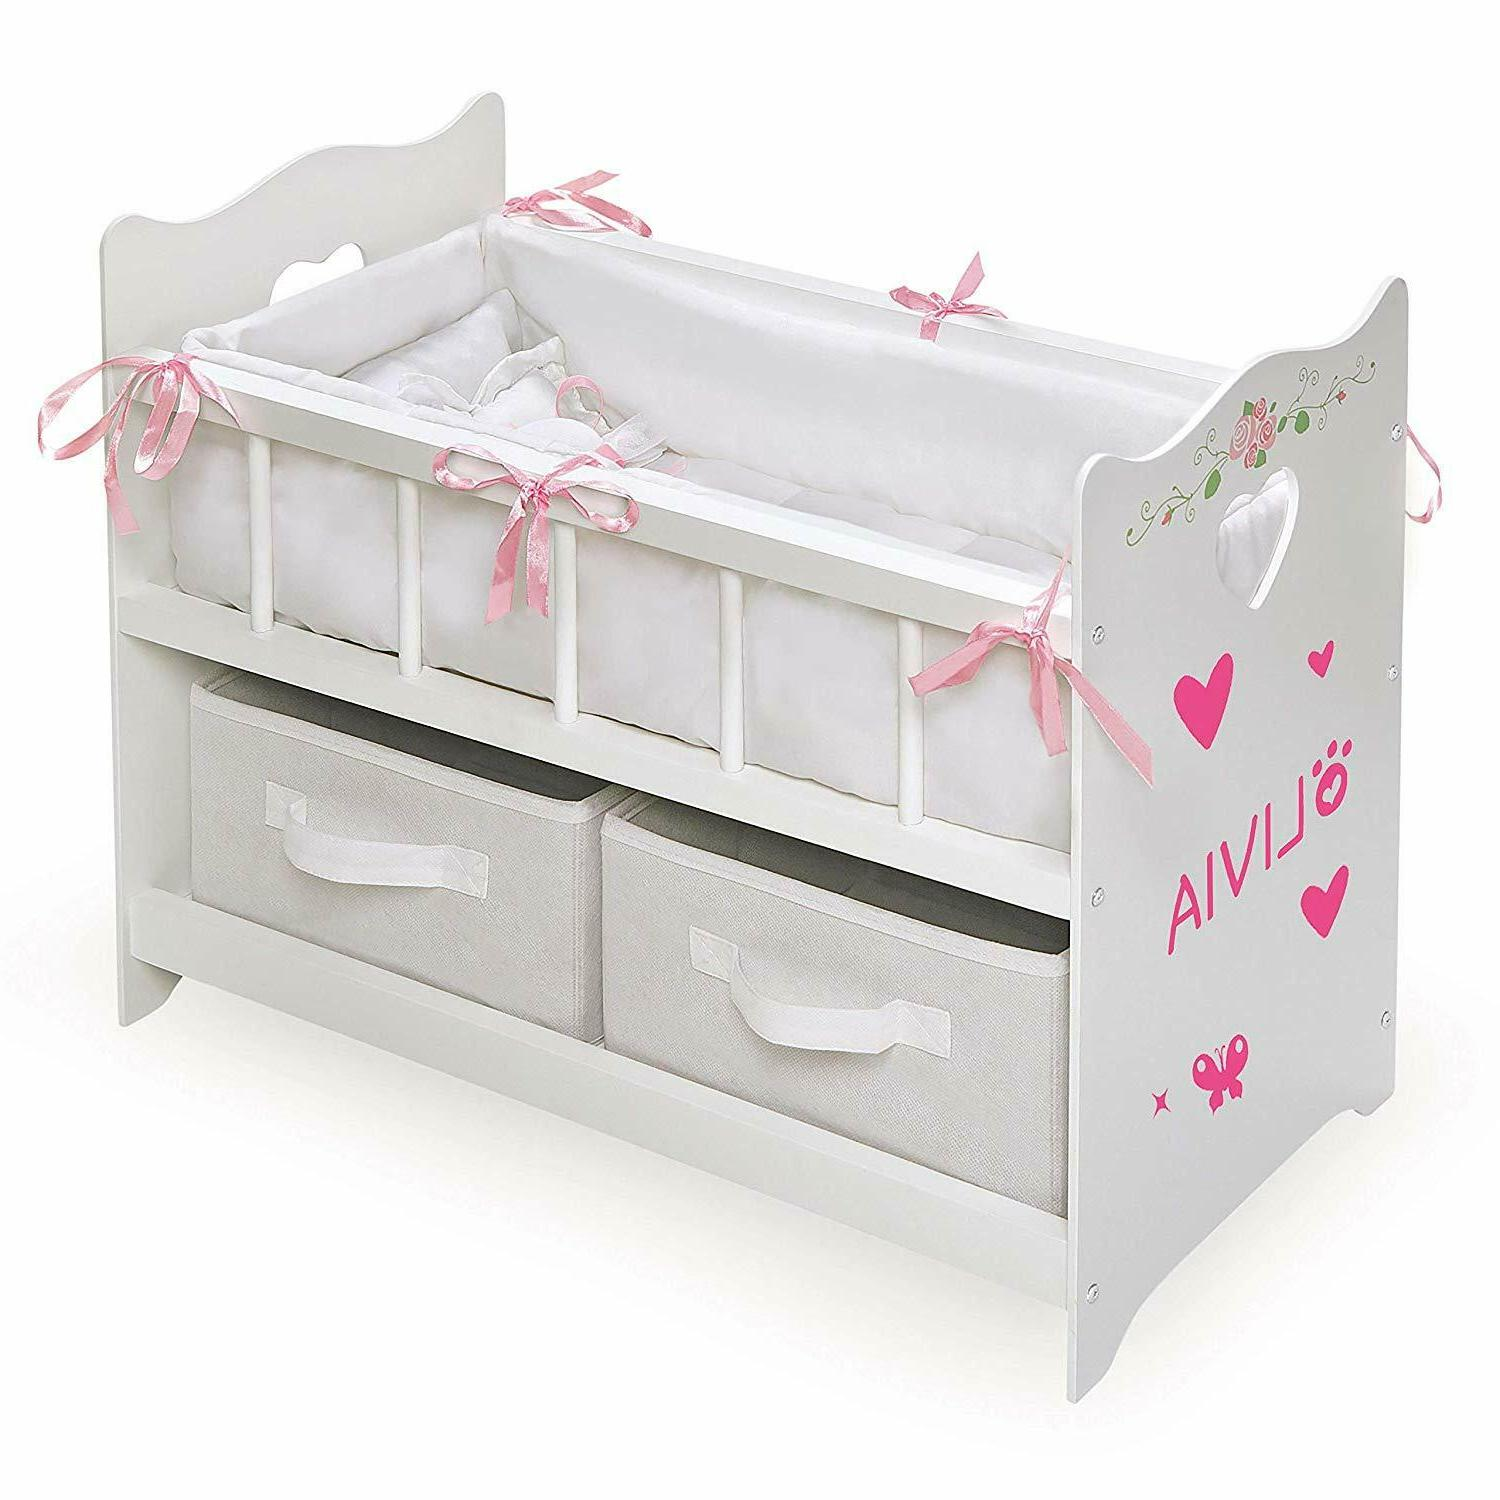 Furniture Baby Doll Crib Wooden Girl Play Bedding Mobile Cra